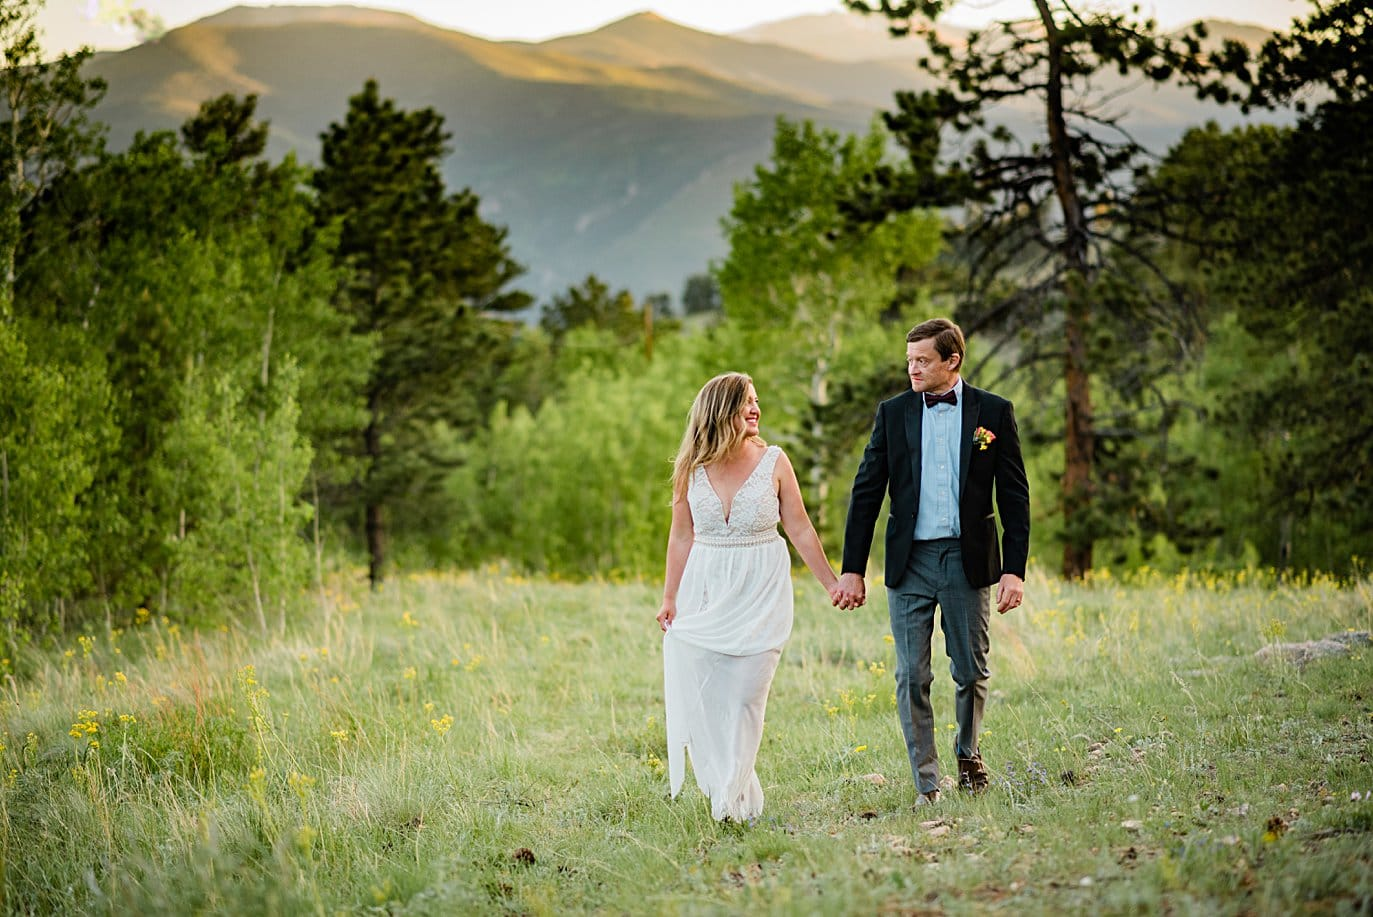 bride and groom walk hand in hand in field with mountain alpenglow at Golden elopement by Golden elopement photographer Jennie Crate